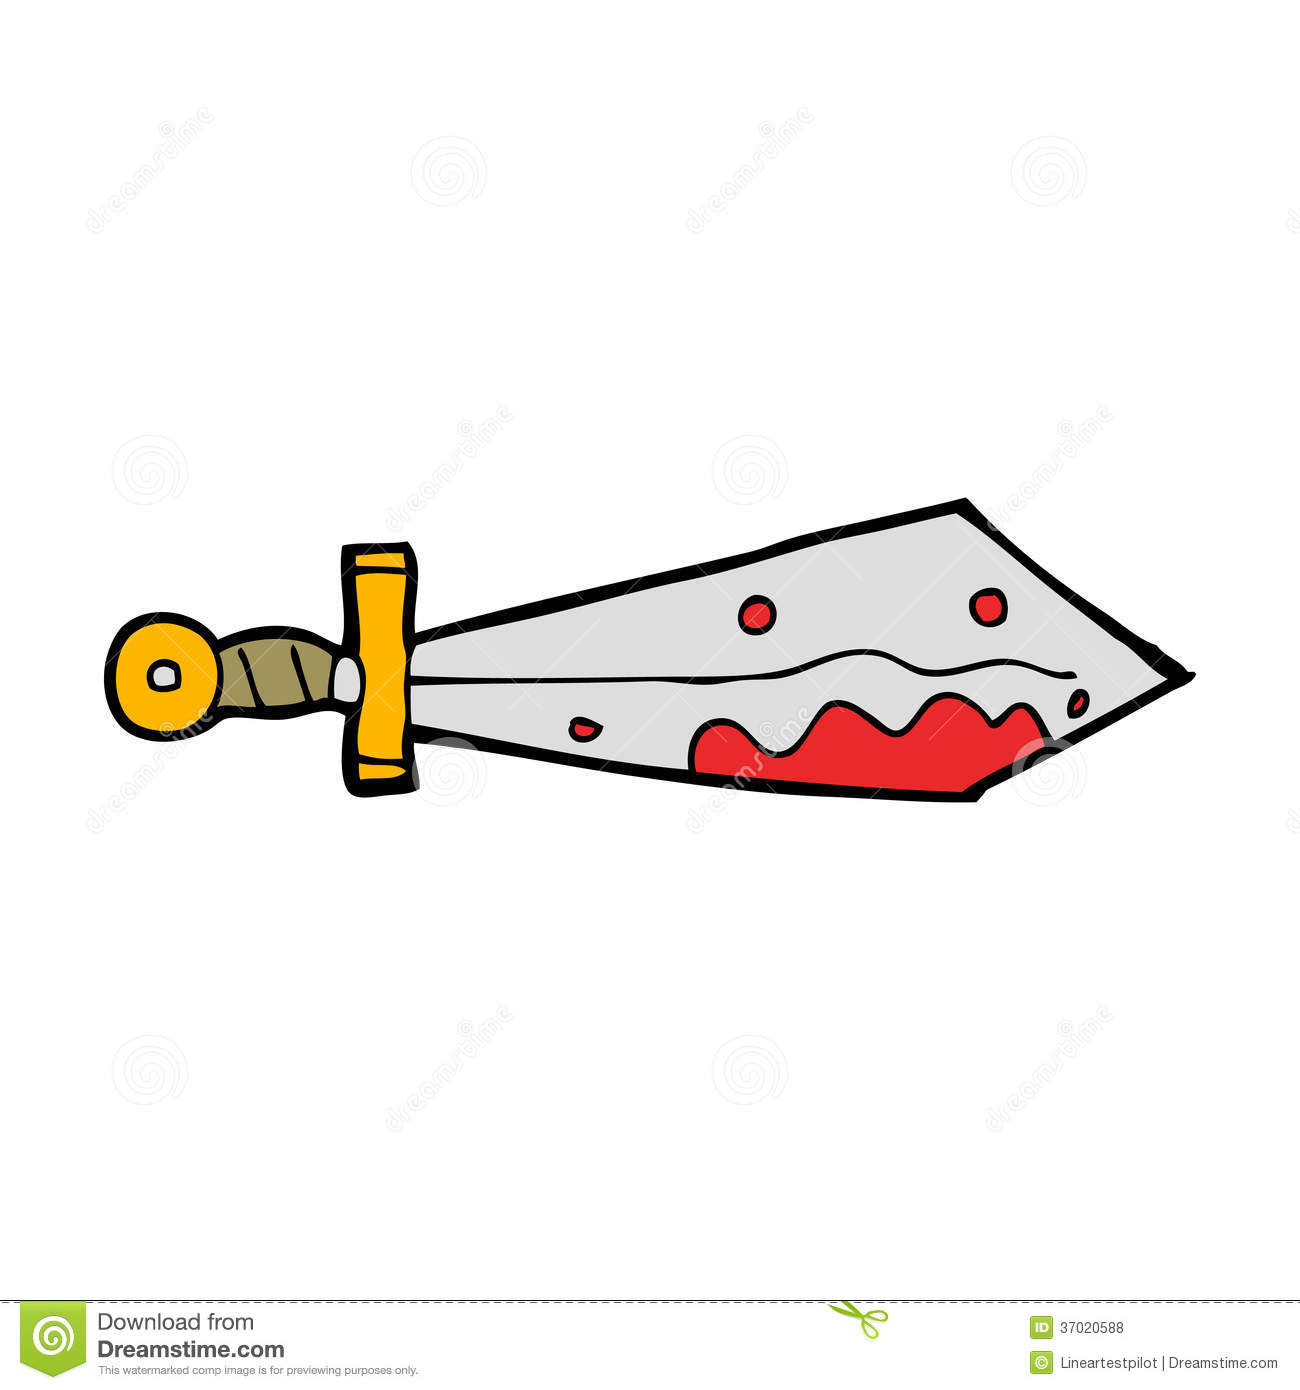 Khife clipart bloody sword Clipart Sword Bloody cliparts Bloody